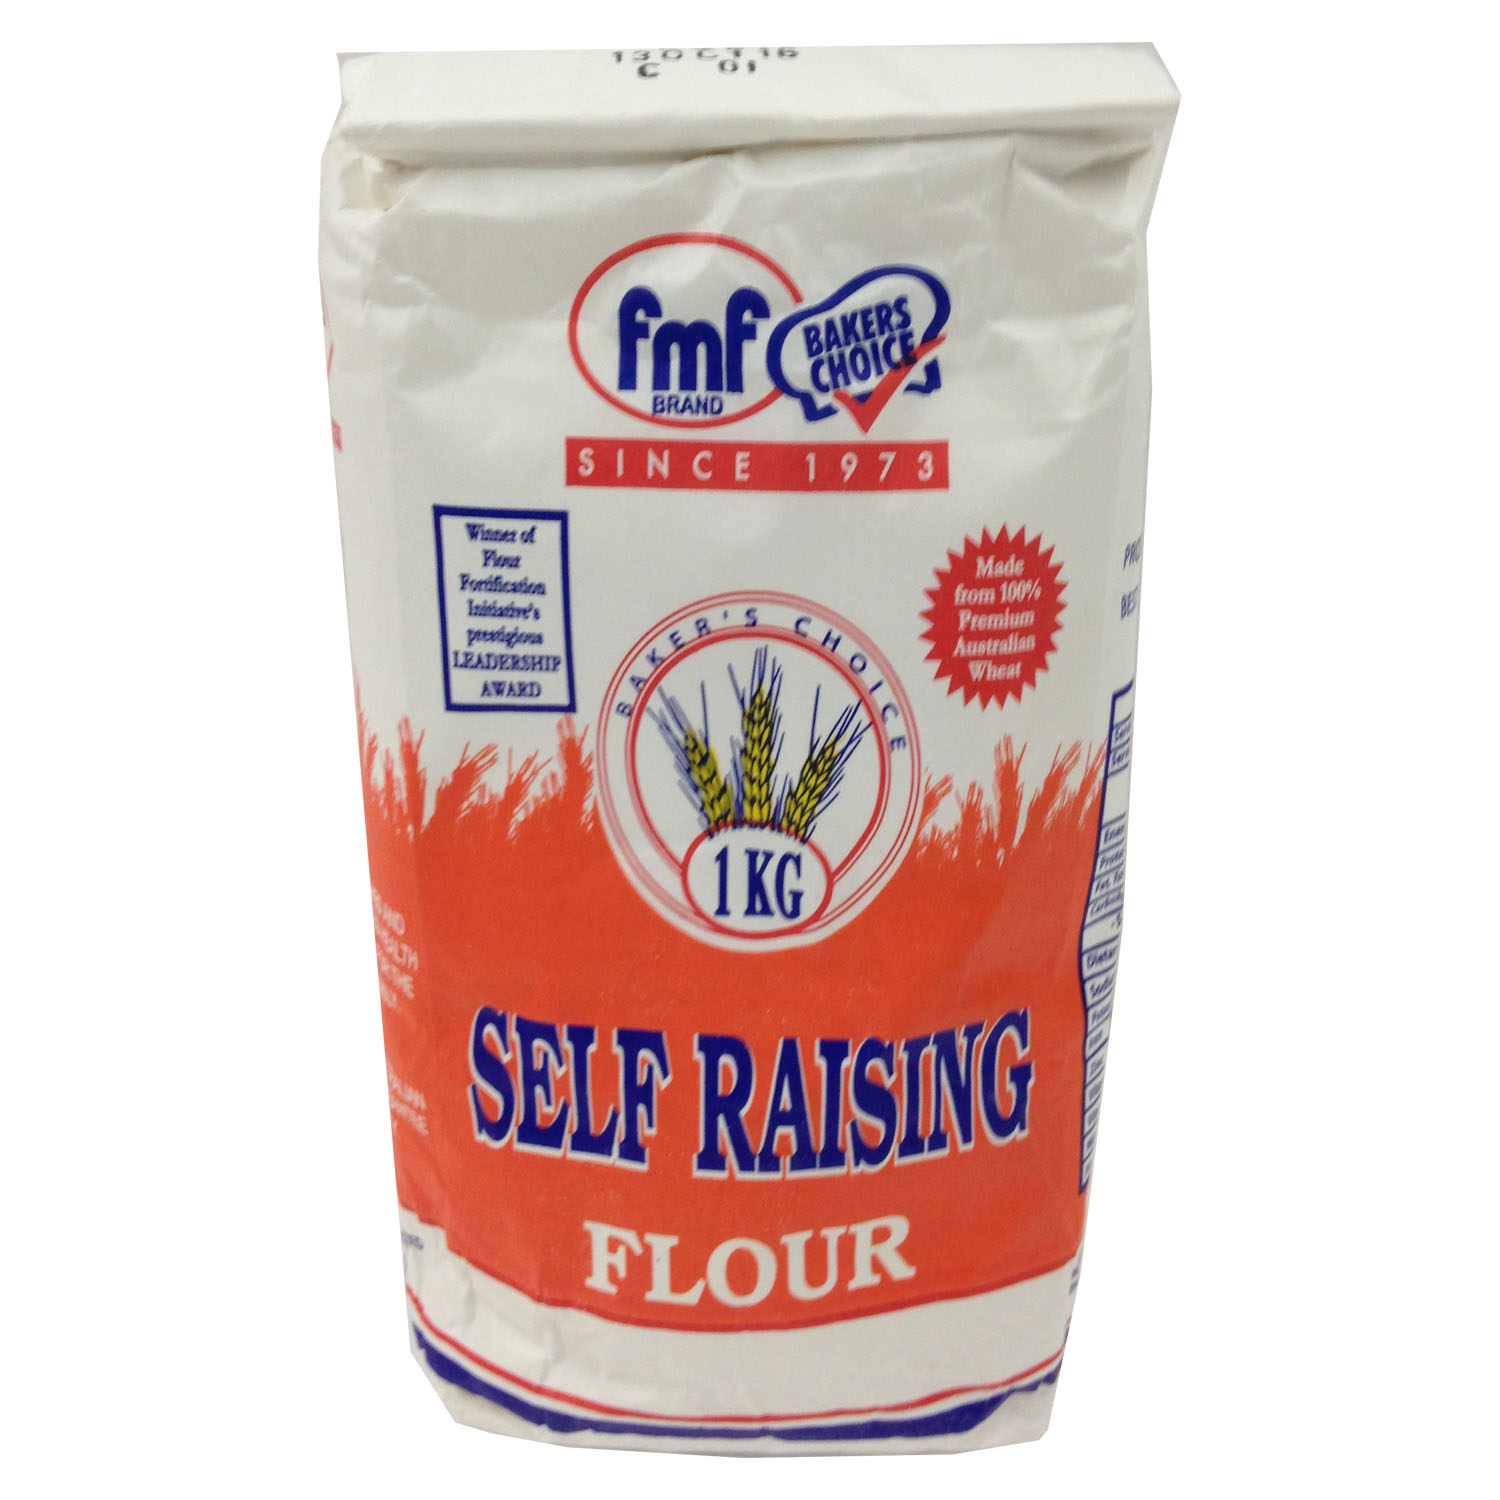 FMF Self Raising Flour